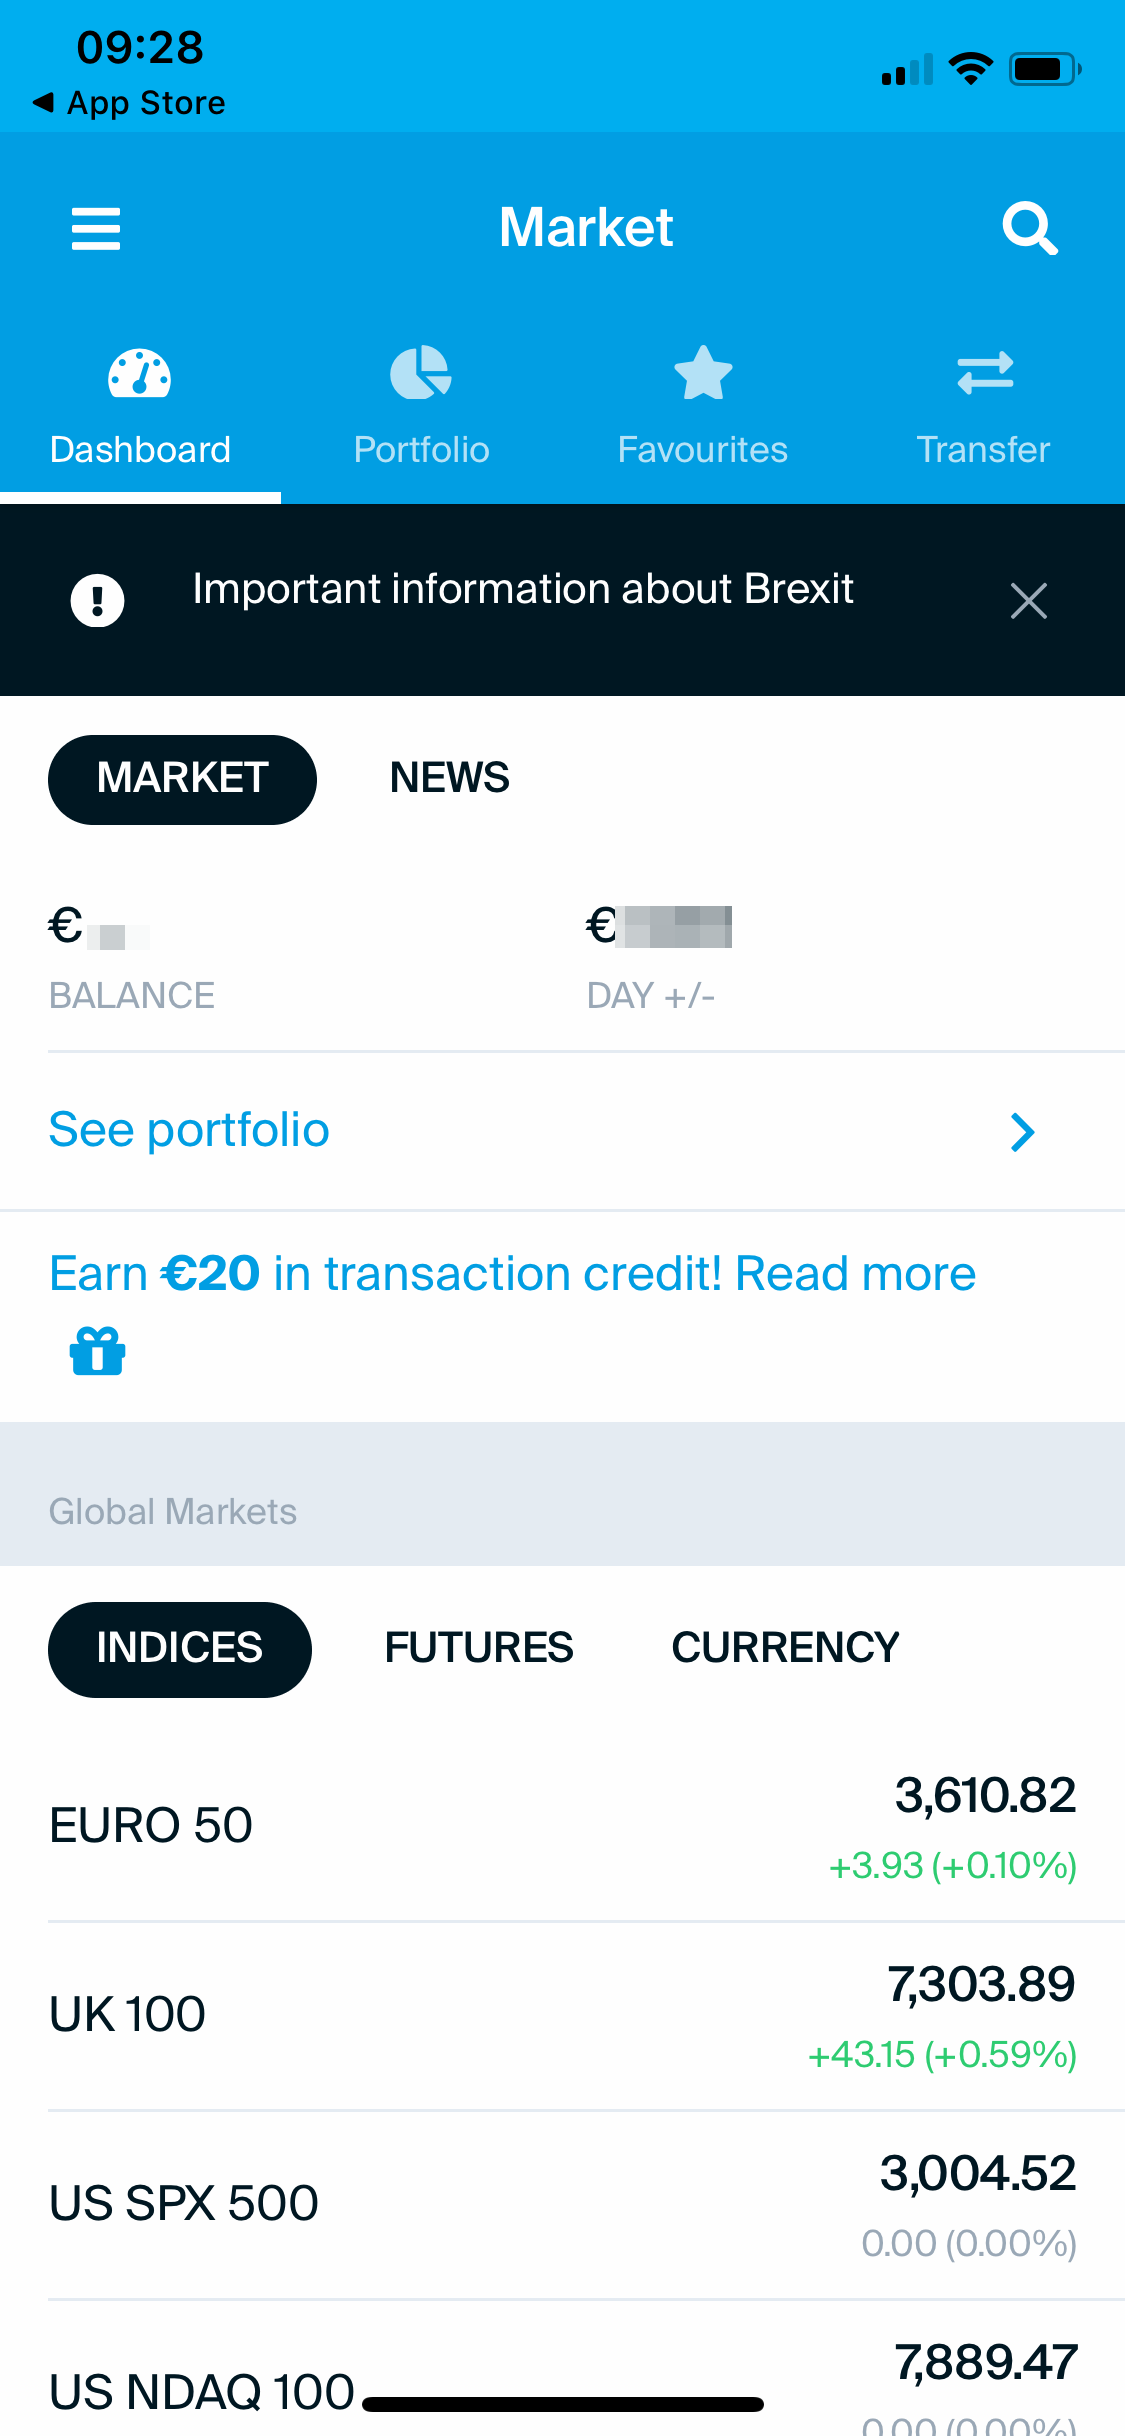 DEGIRO review - Mobile trading platform